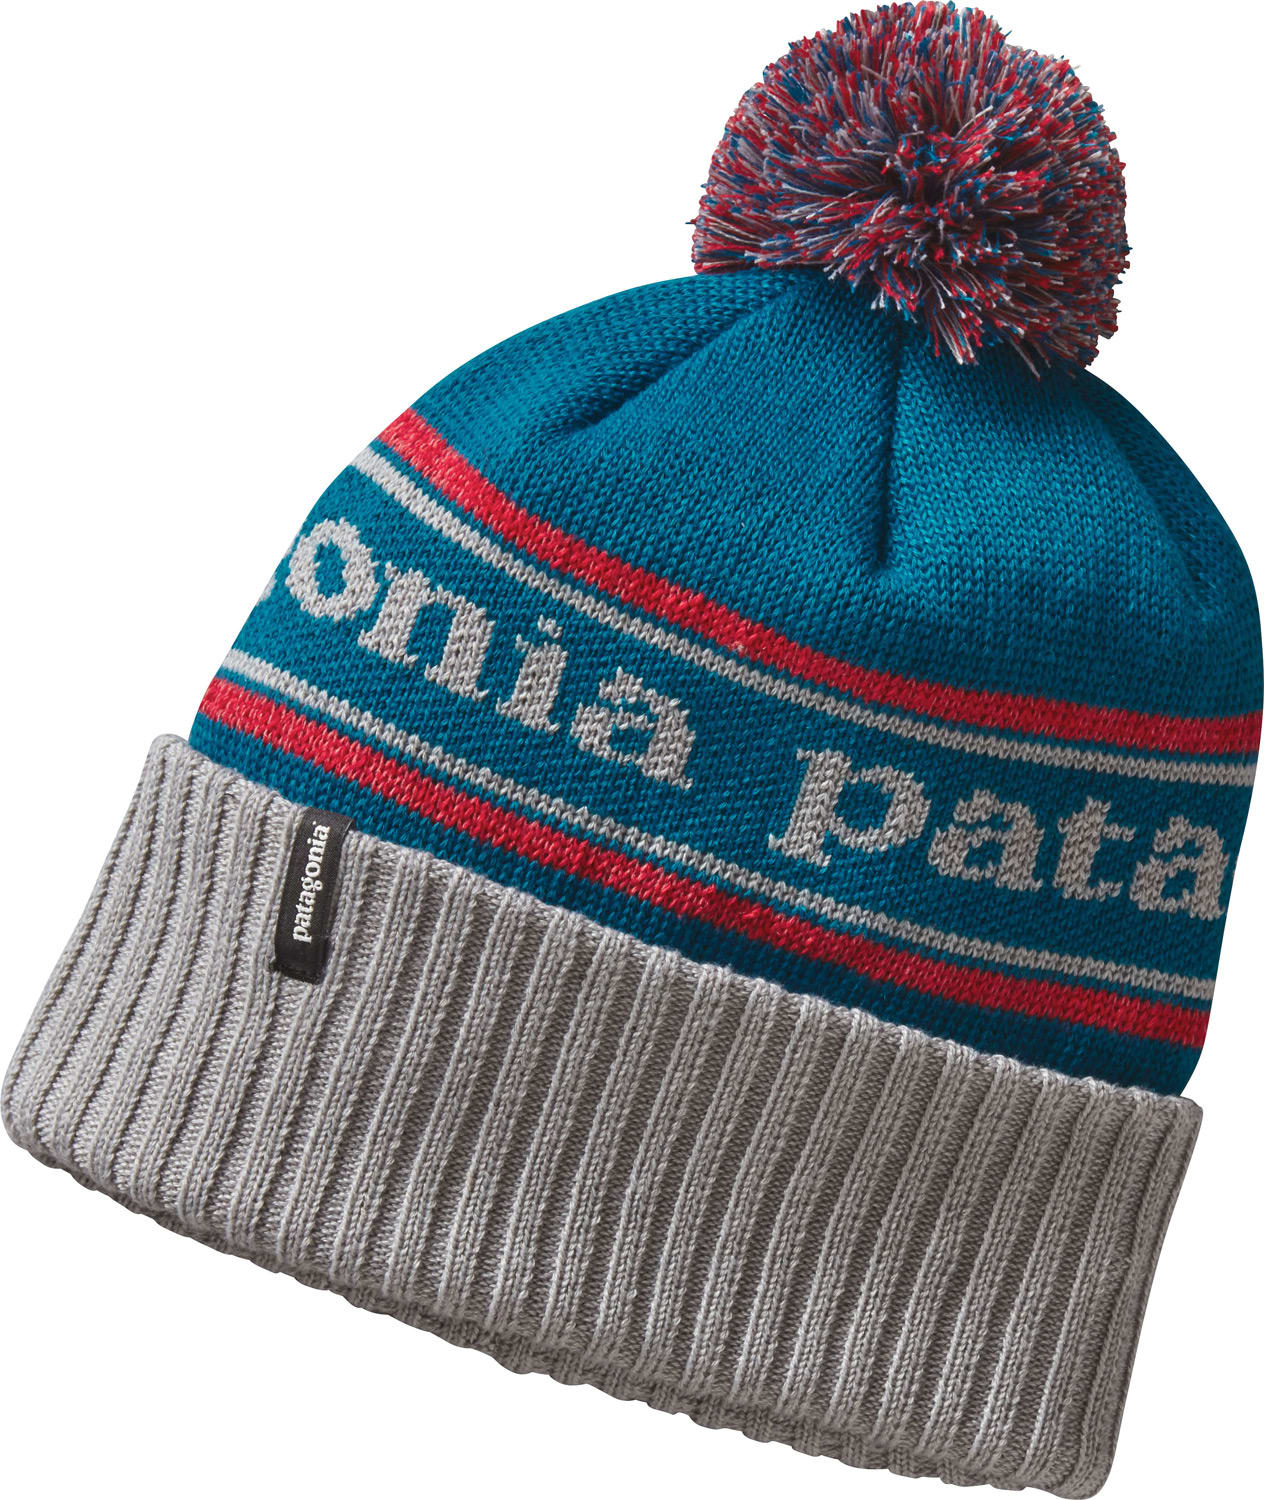 Patagonia Powder Town Beanie 2017 on PopScreen 25af9630b